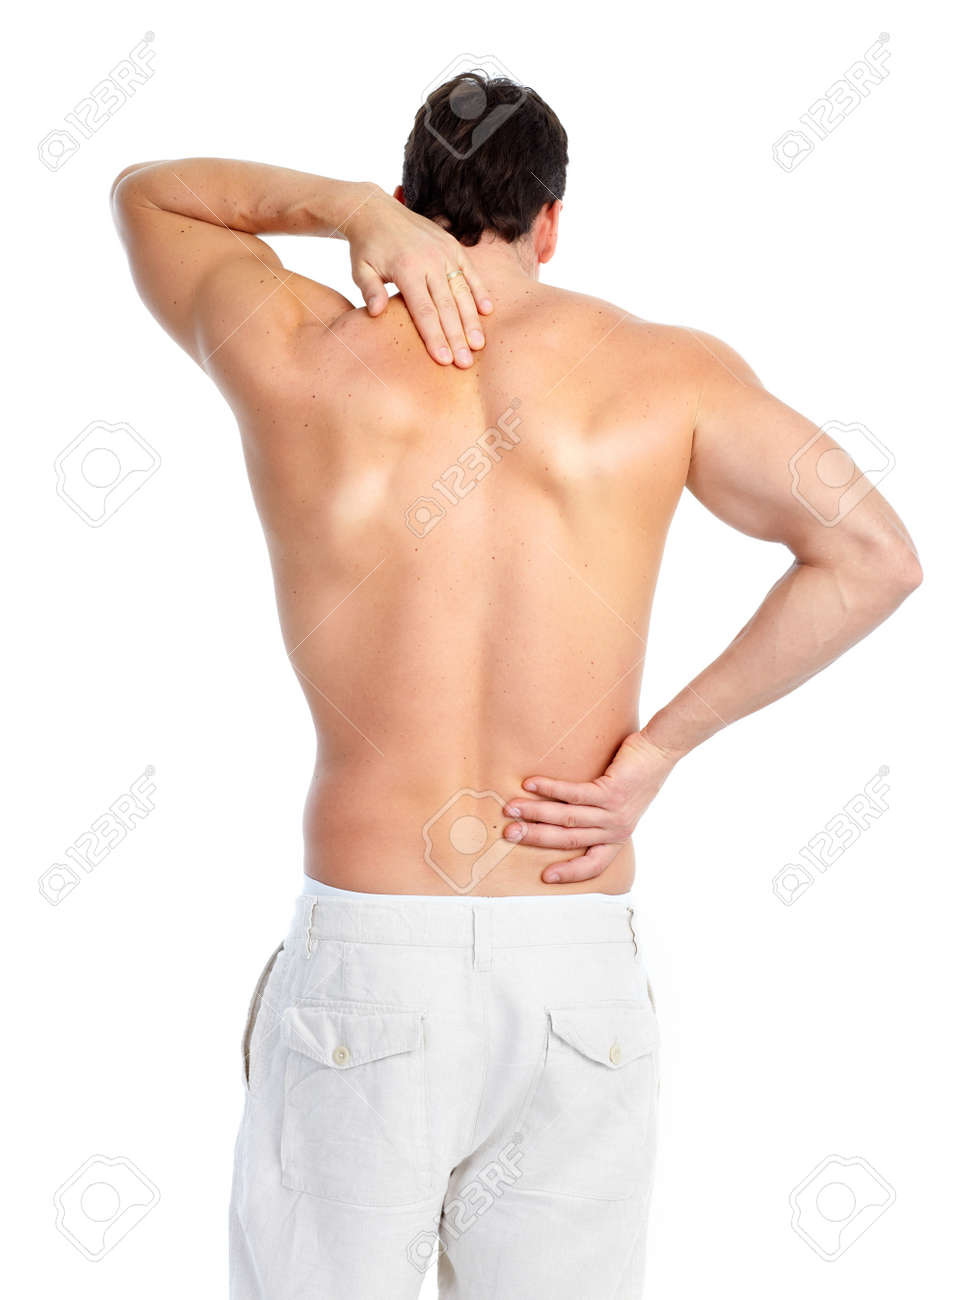 Sick young man. Back pain. Over white background Stock Photo - 8868131